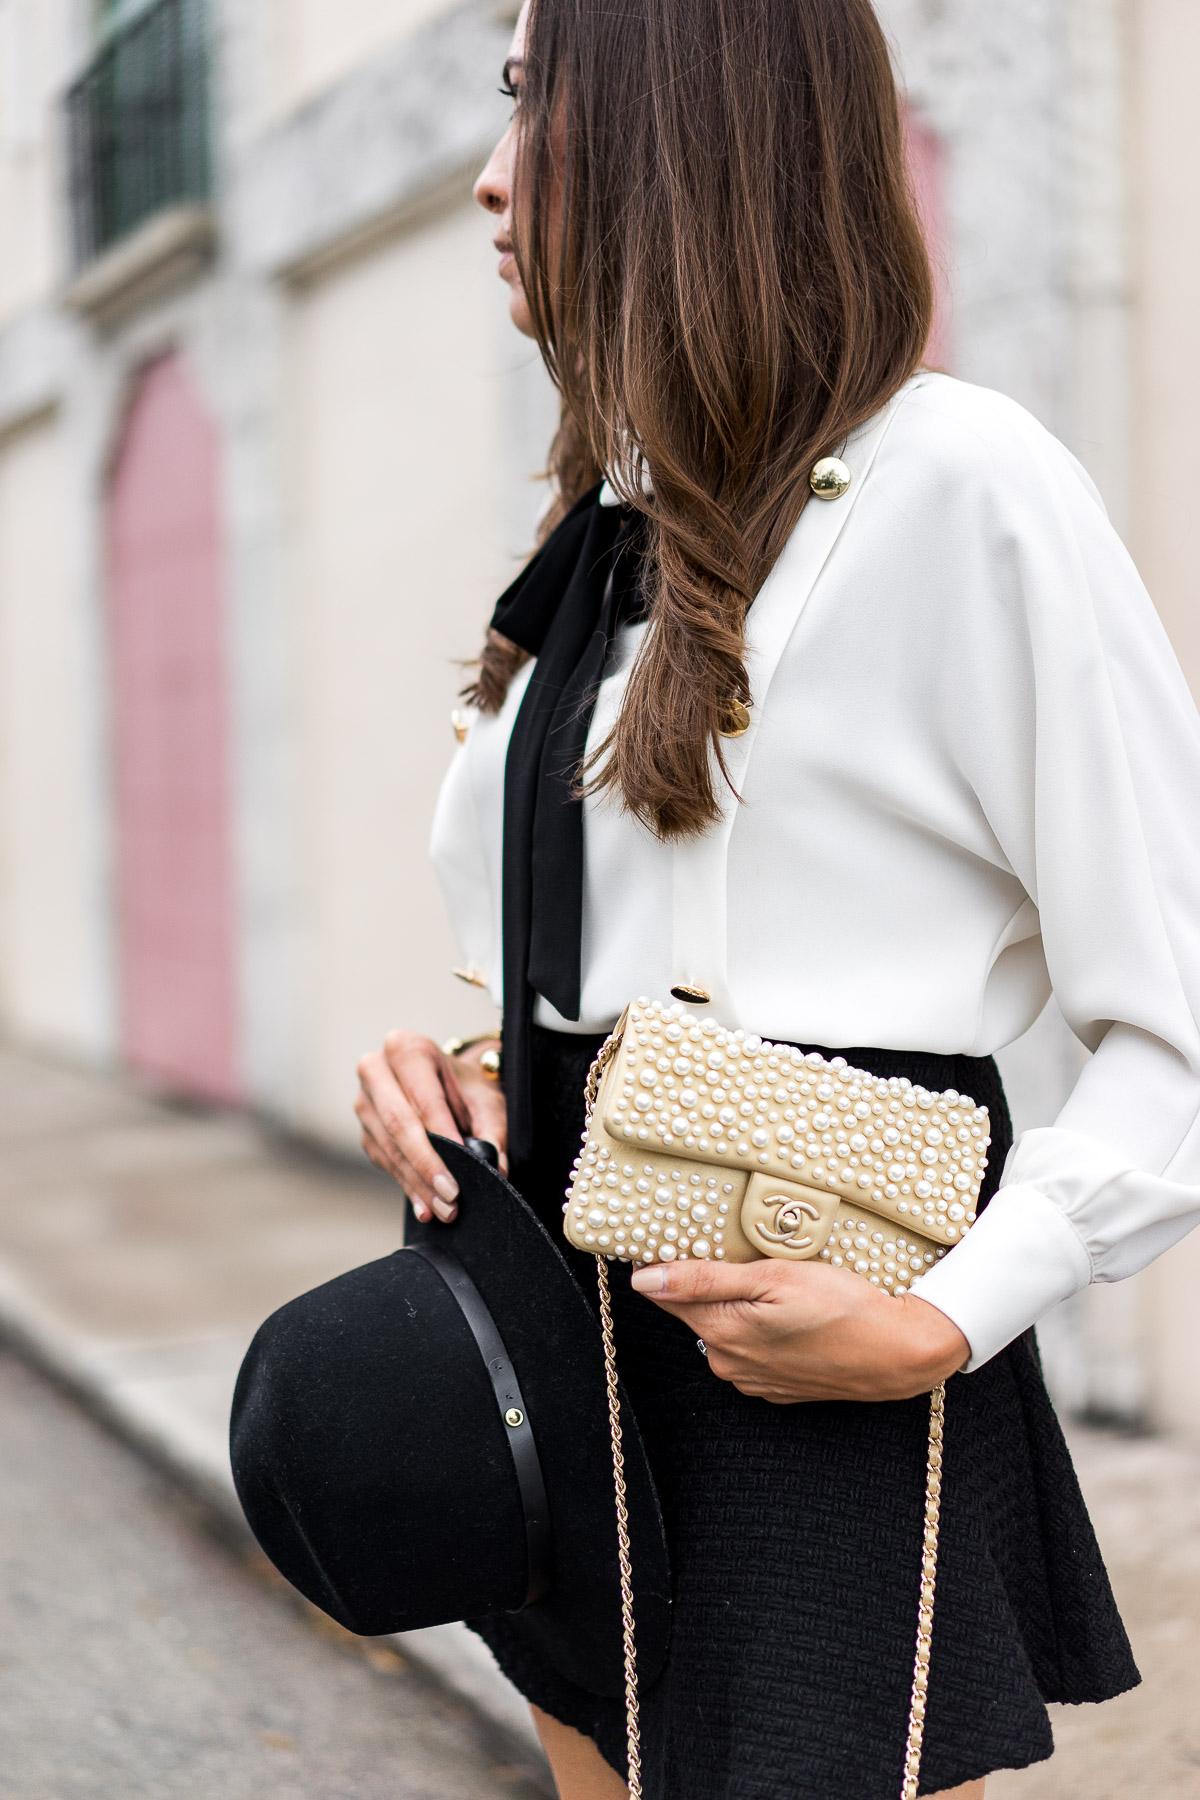 Chanel pearl bag is beautifully styled by Amanda of A Glam Lifestyle blog with Storets affordable fashion